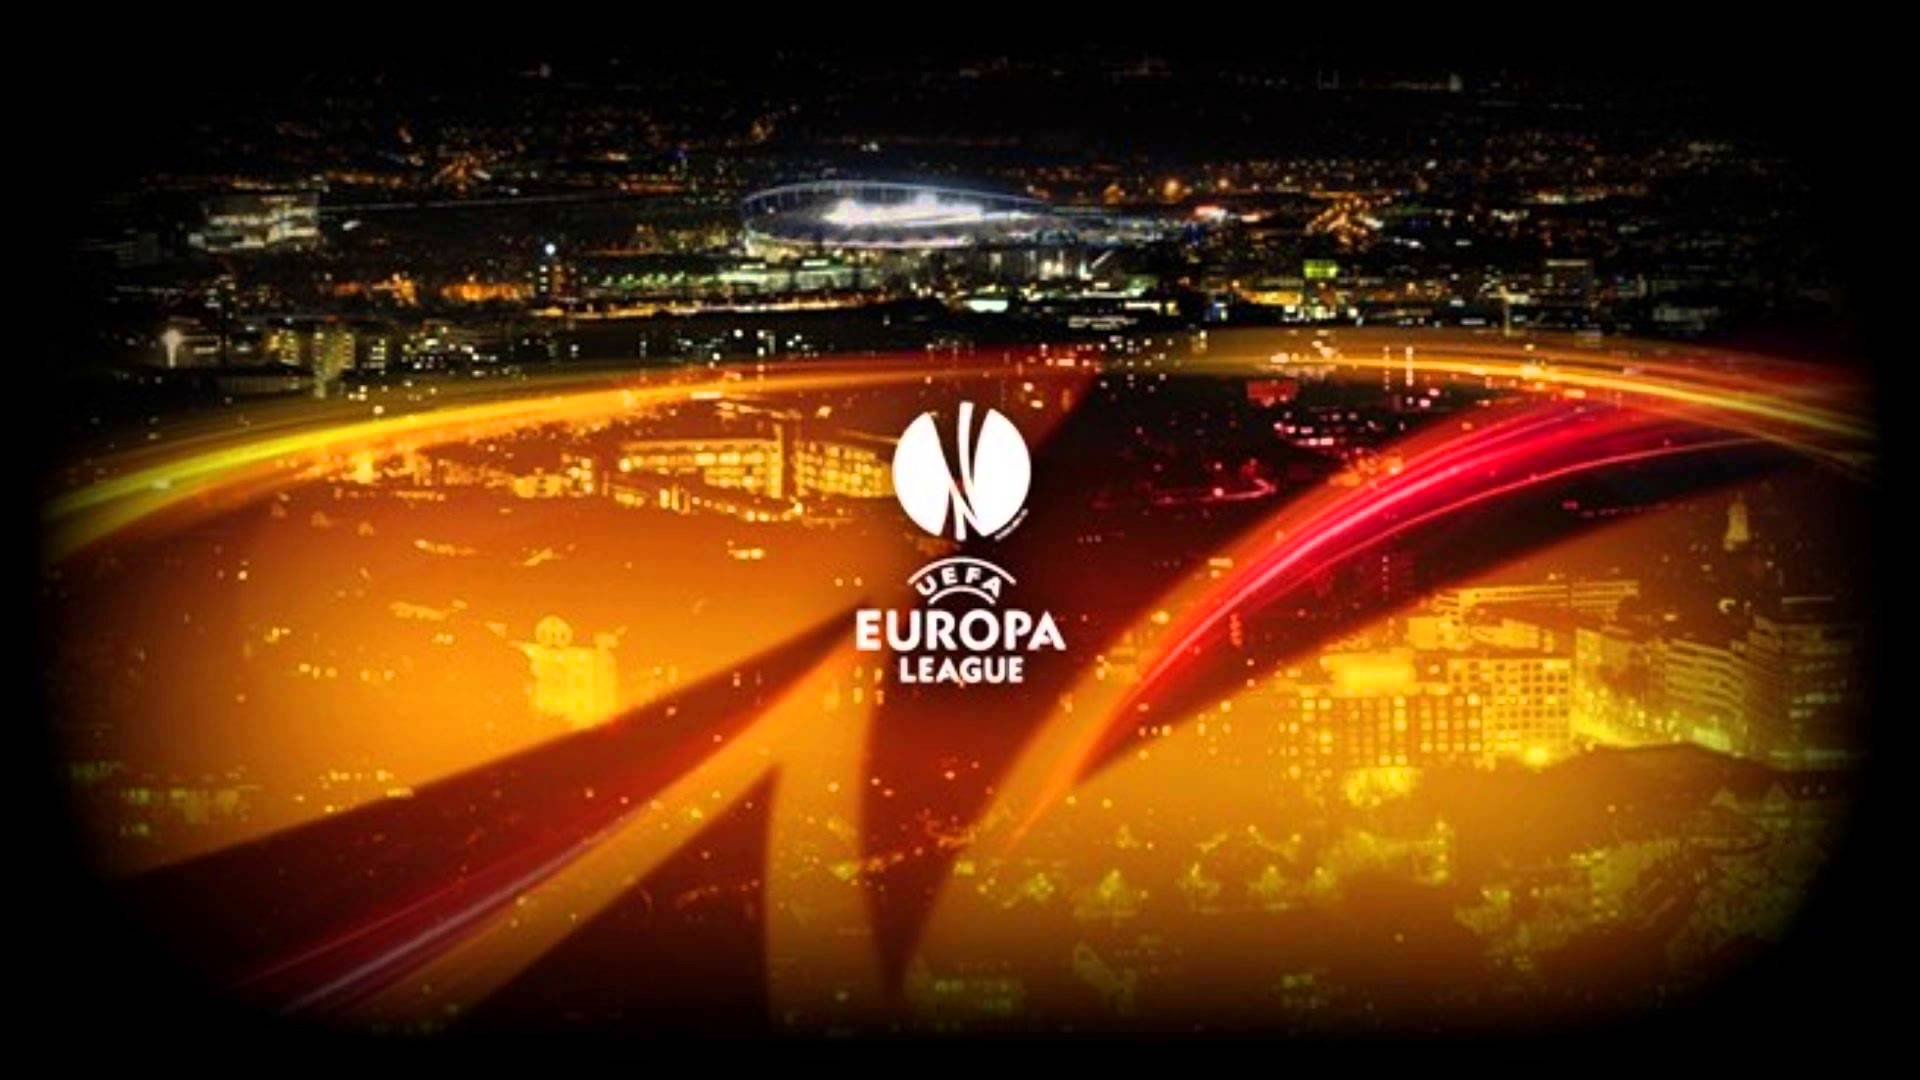 Download Logo De La Uefa Europa League Png